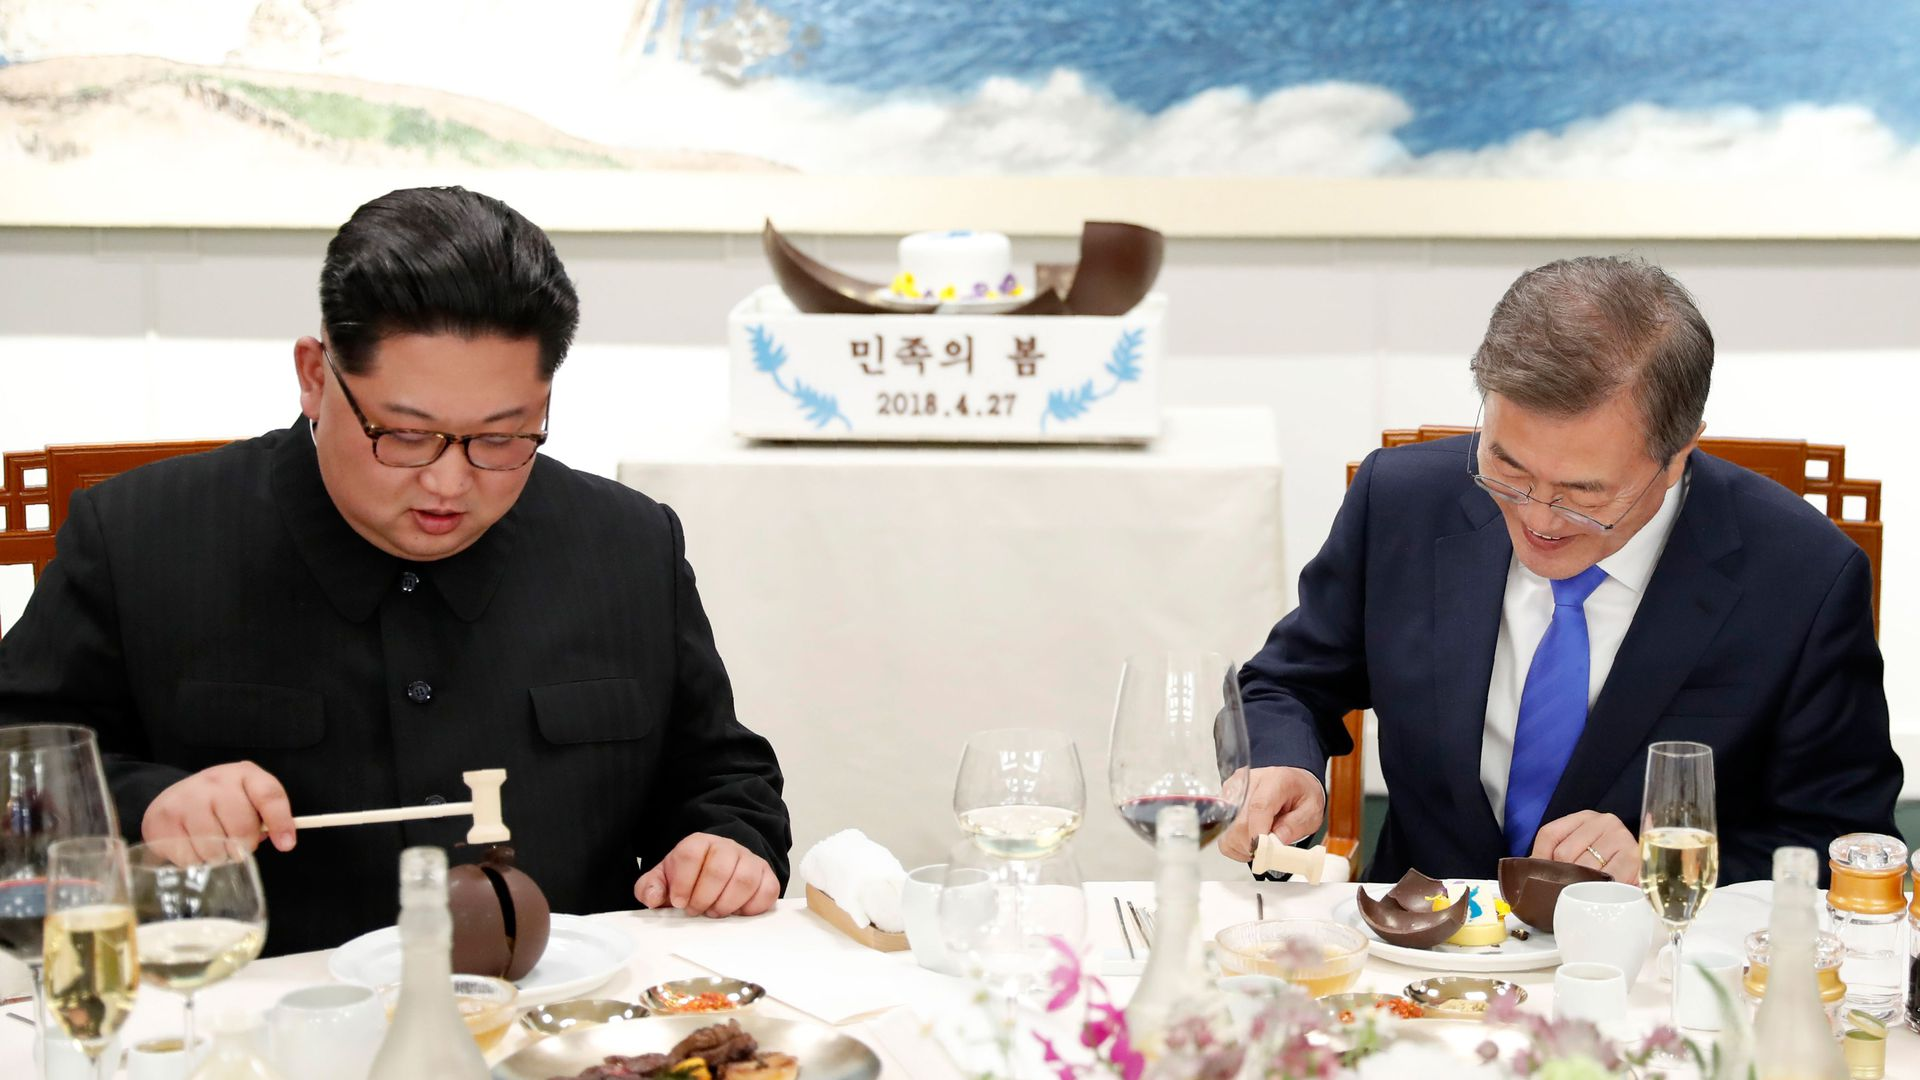 Moon and Kim eat together at the Korea summit